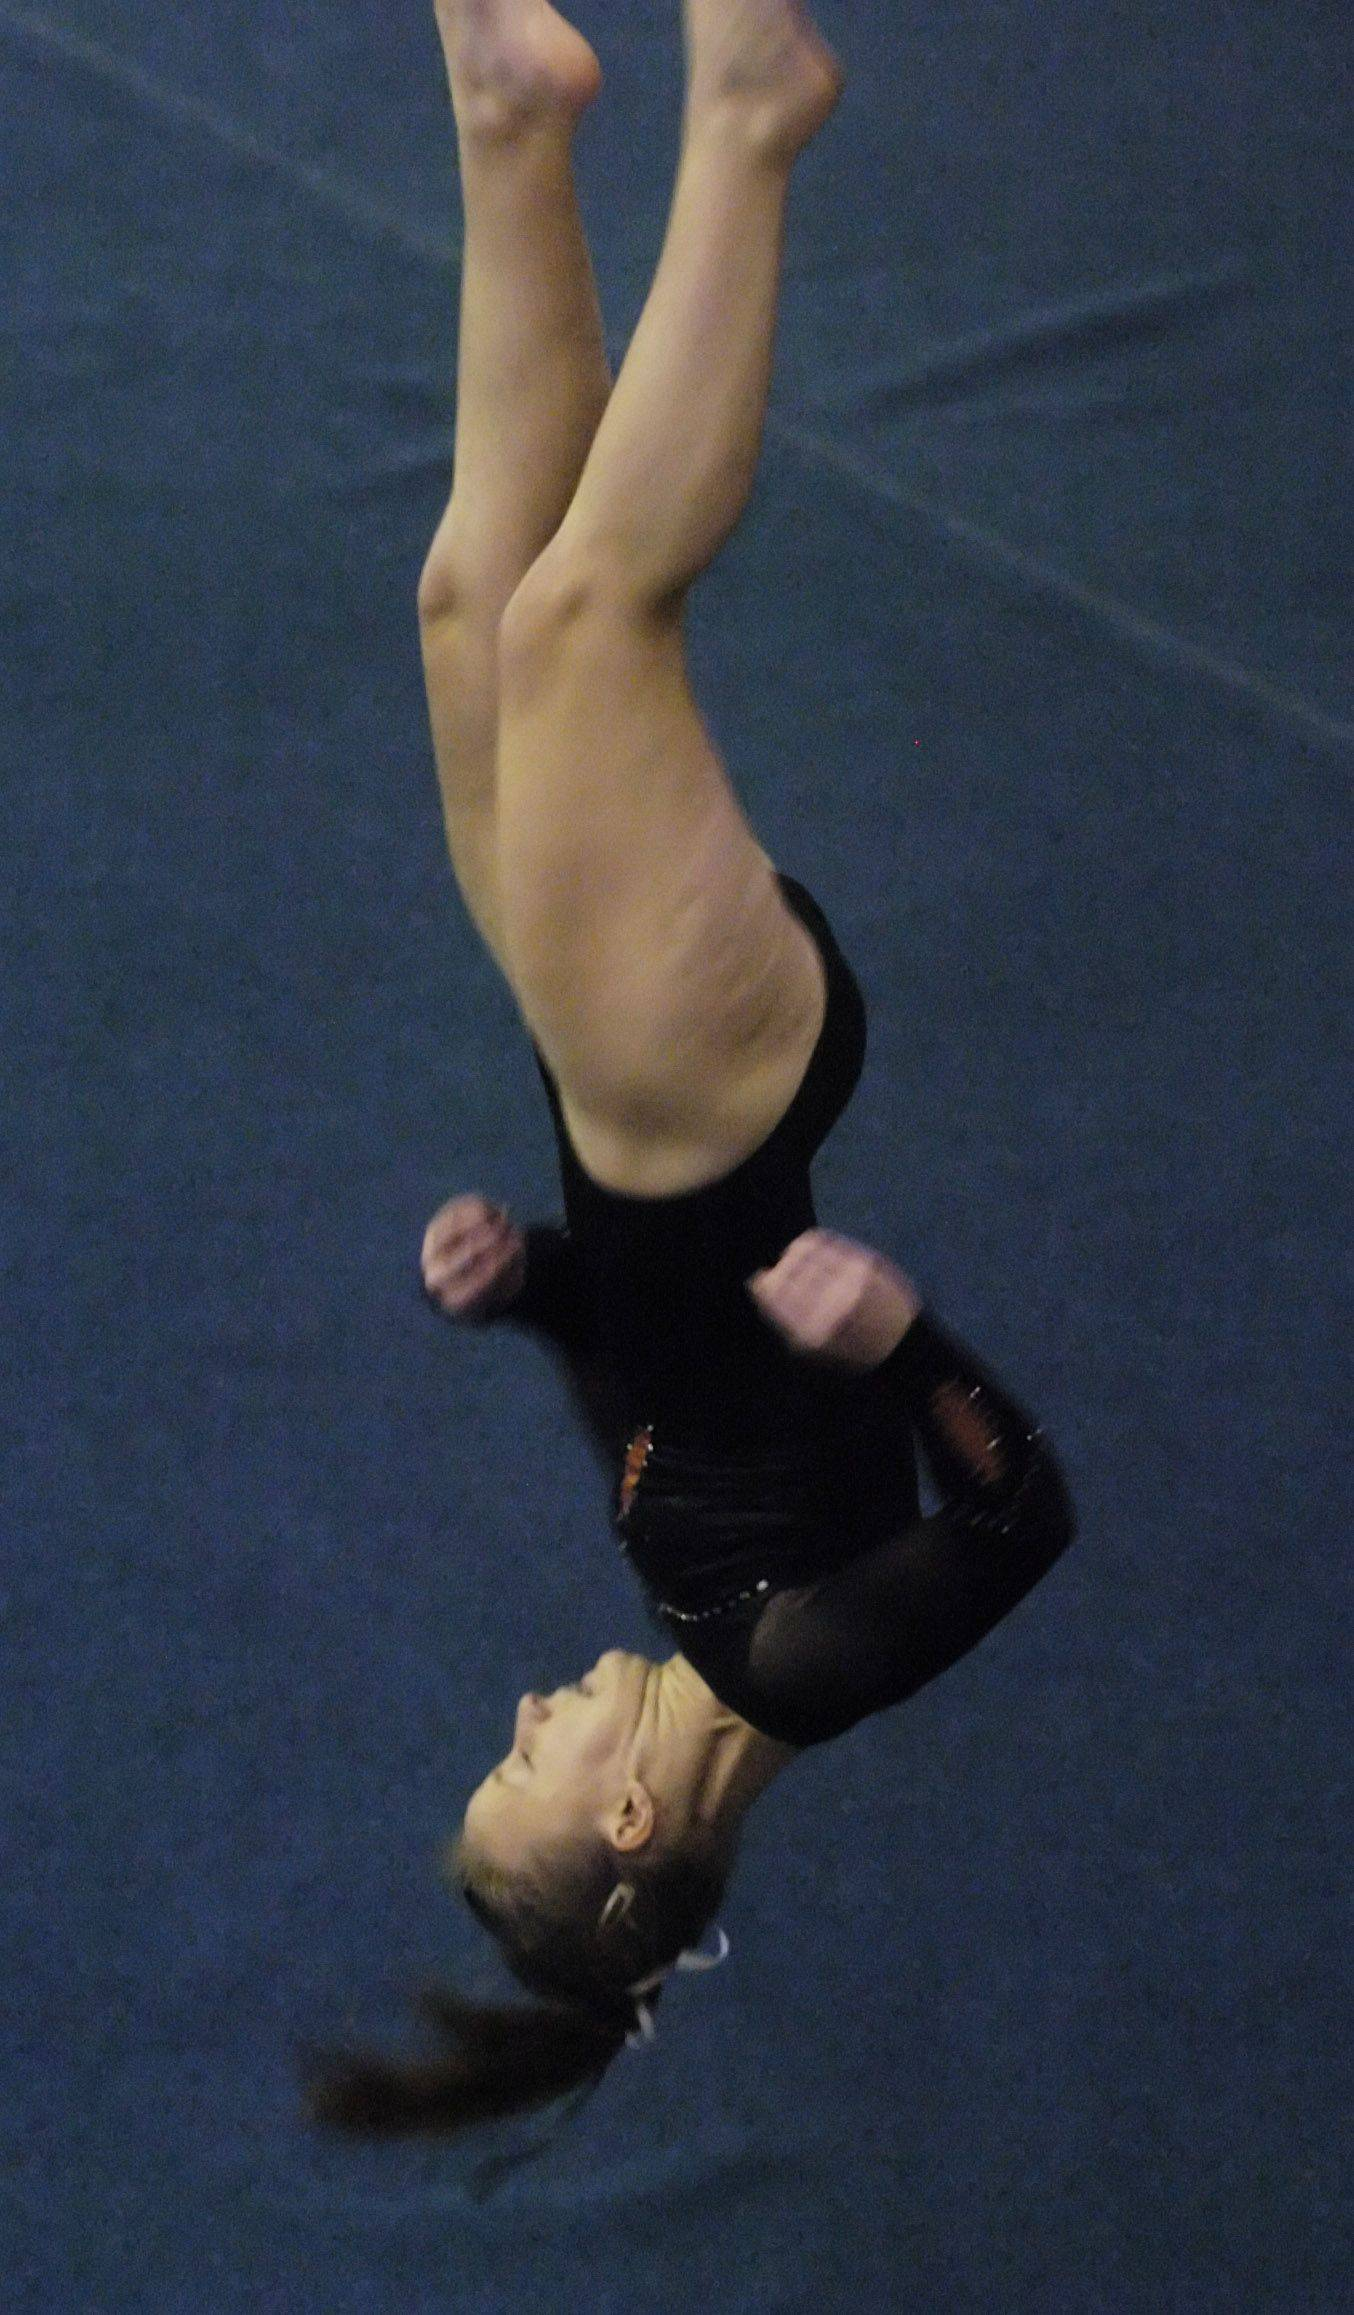 Libertyville's Mariah Lee competes on the floor exercise during Saturday's Palatine gymanstics invitational.